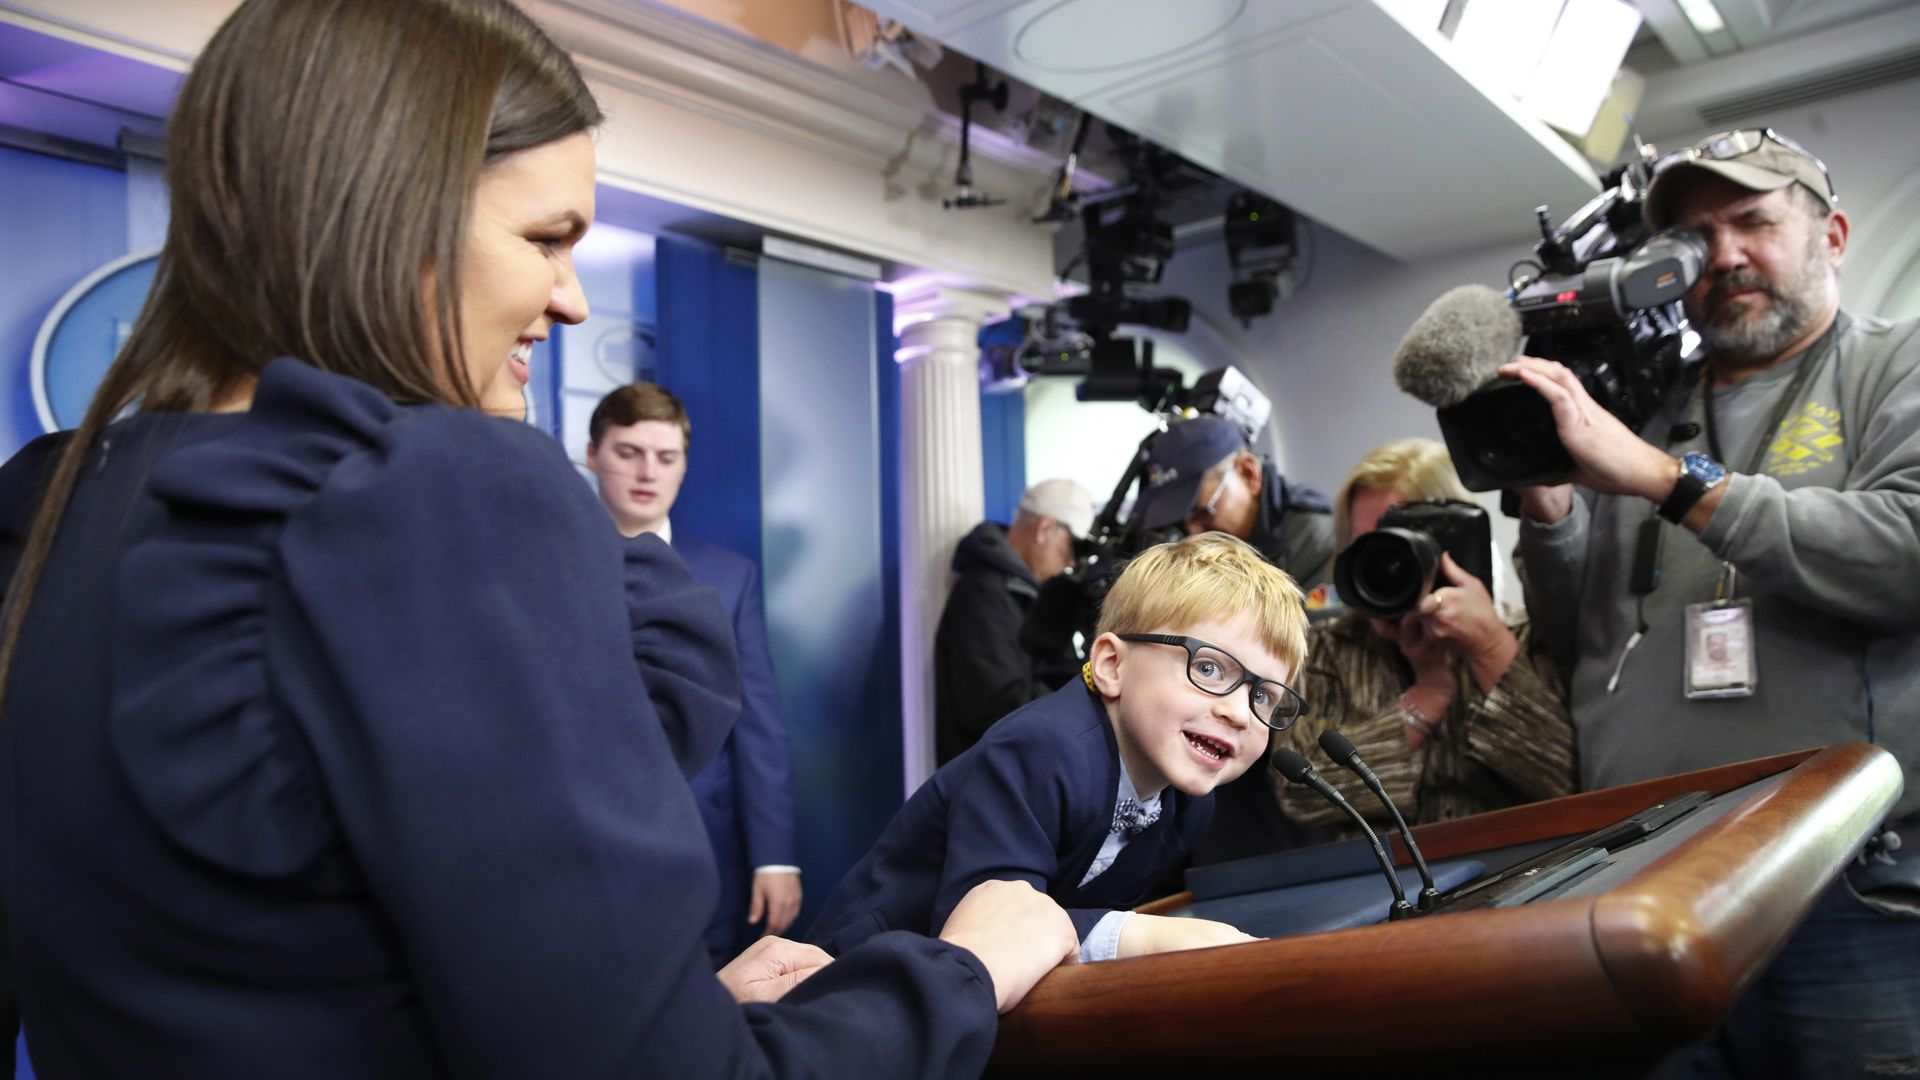 Sanders' son Huck, 4, climbed the podium during a press preview of the Thanksgiving turkey pardoning.